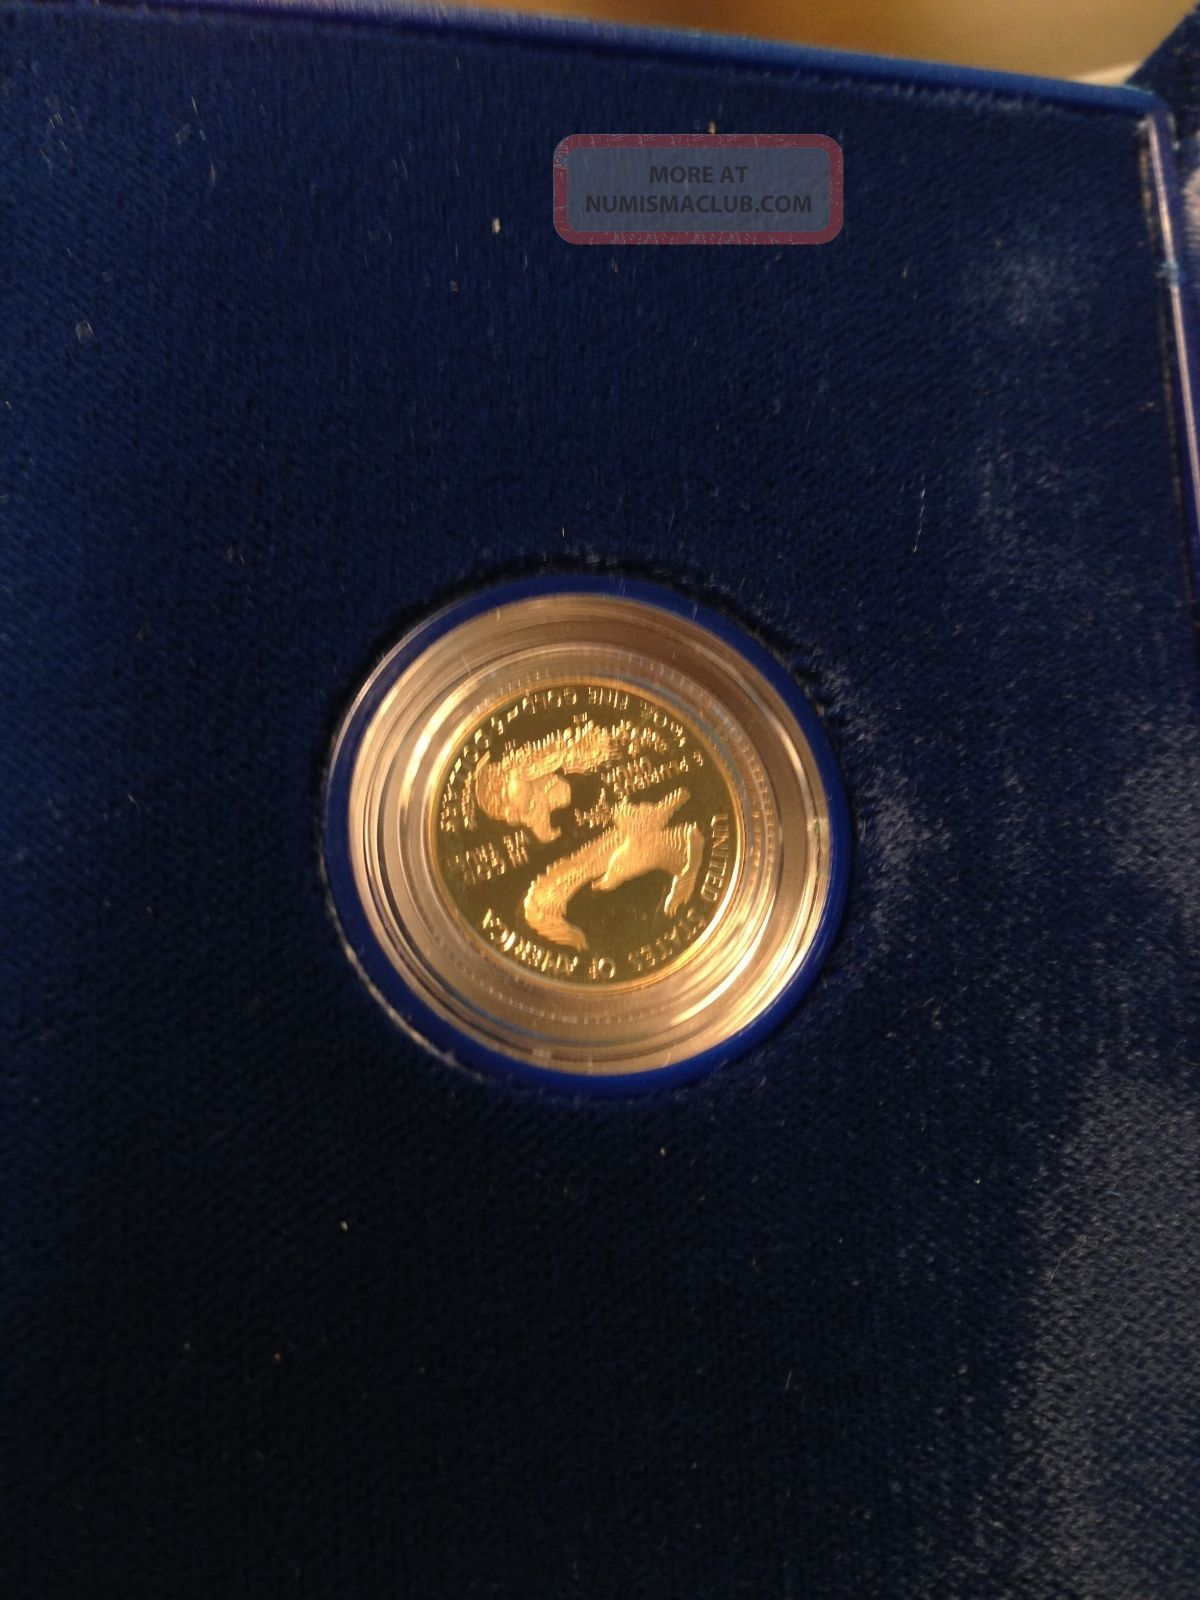 American Eagle One Tenth Ounce Proof Gold Bullion Five Dollar Coin 1996